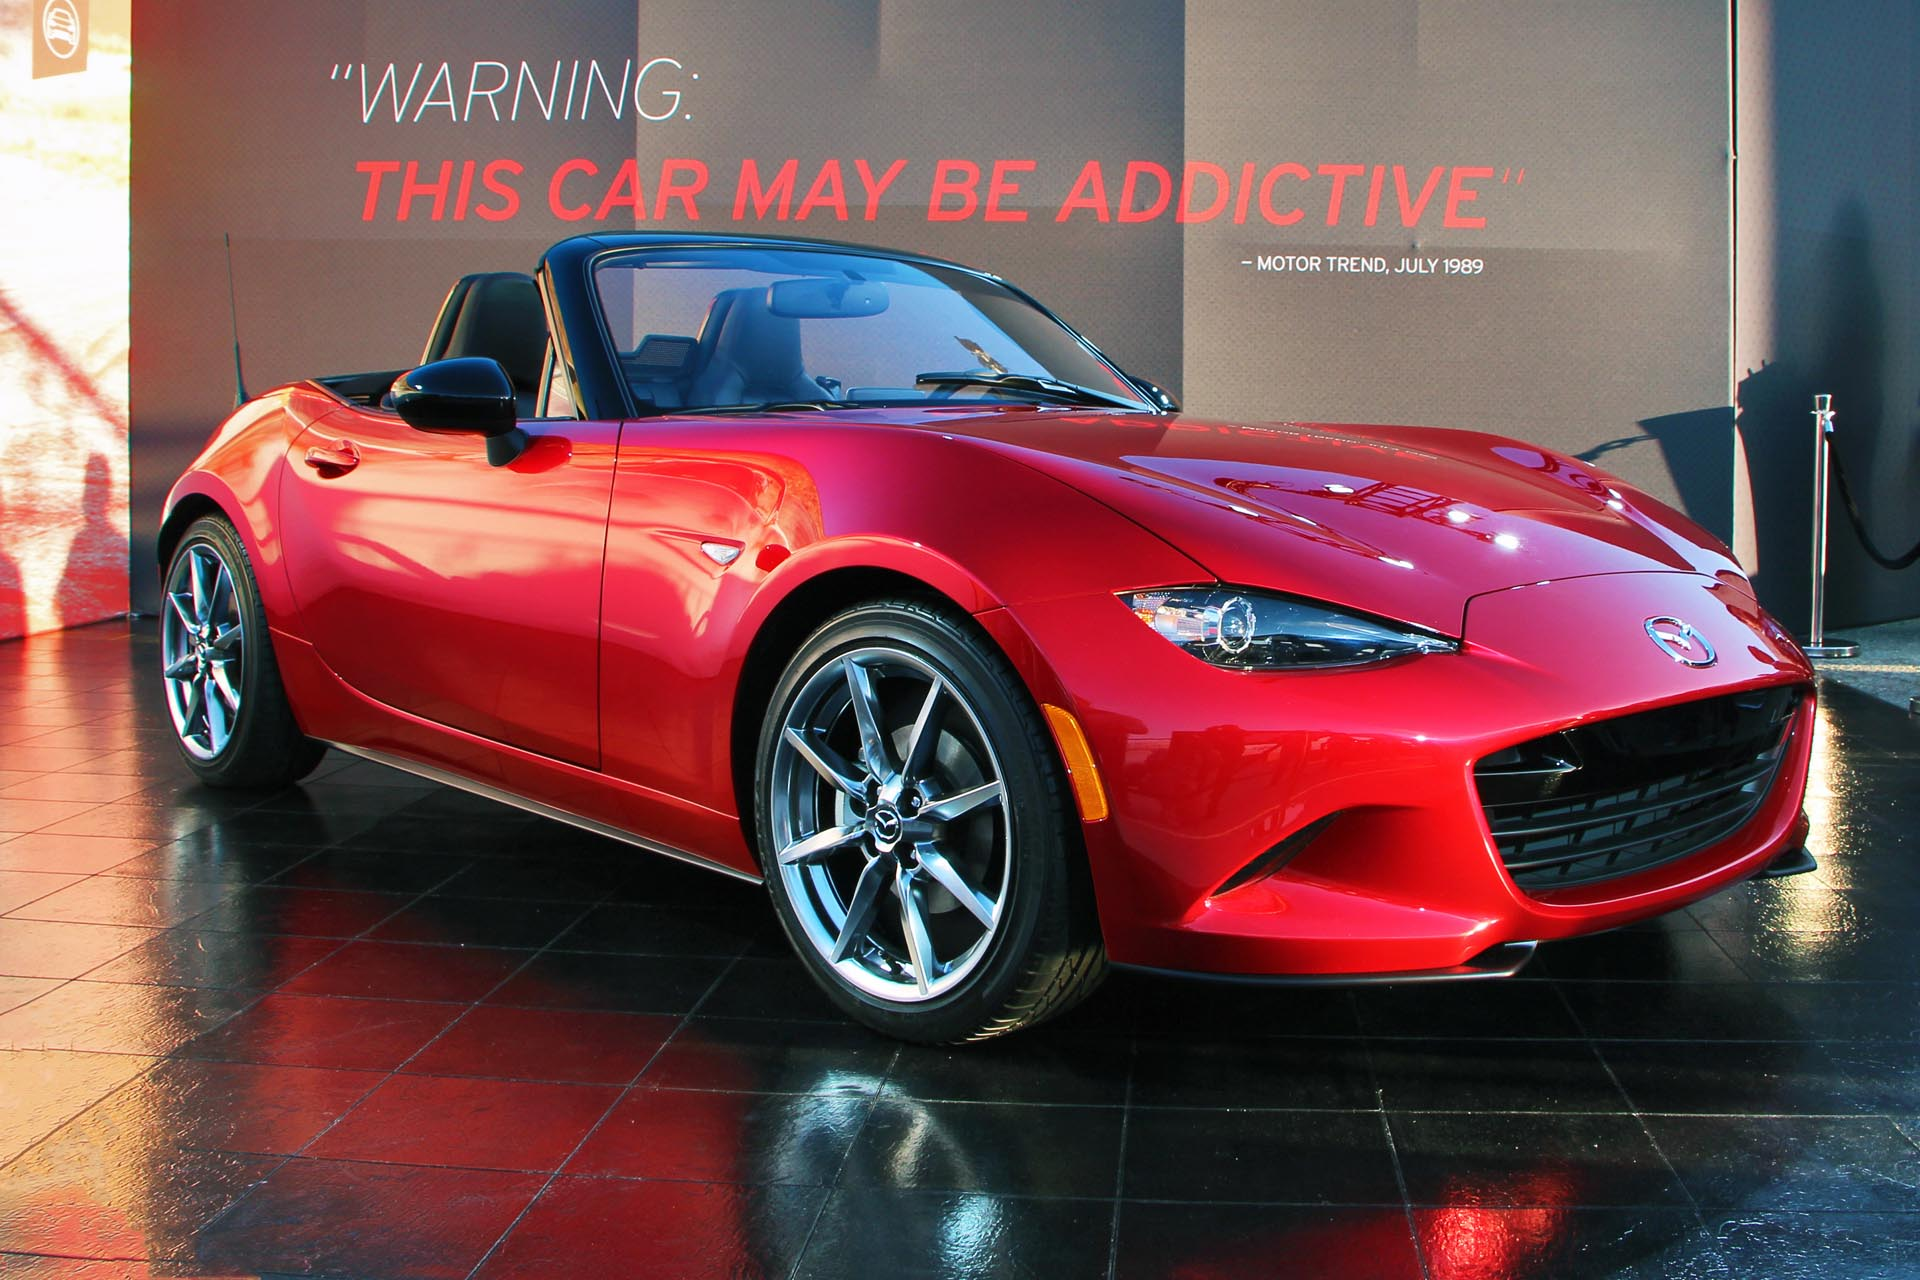 Ignore the haters. Talk to anyone who's actually driven a Mazda MX-5 (also known as the Miata) and they'll sing its praises. It's nimble, responsive, communicative – in short, the perfect driver's car. Need more rear visibility? Put the roof down. Of course, it's a two-seat convertible in a crossover/SUV world so highway driving can be a bit intimidating if you find yourself trapped between a tractor-trailer and a Cadillac Escalade.